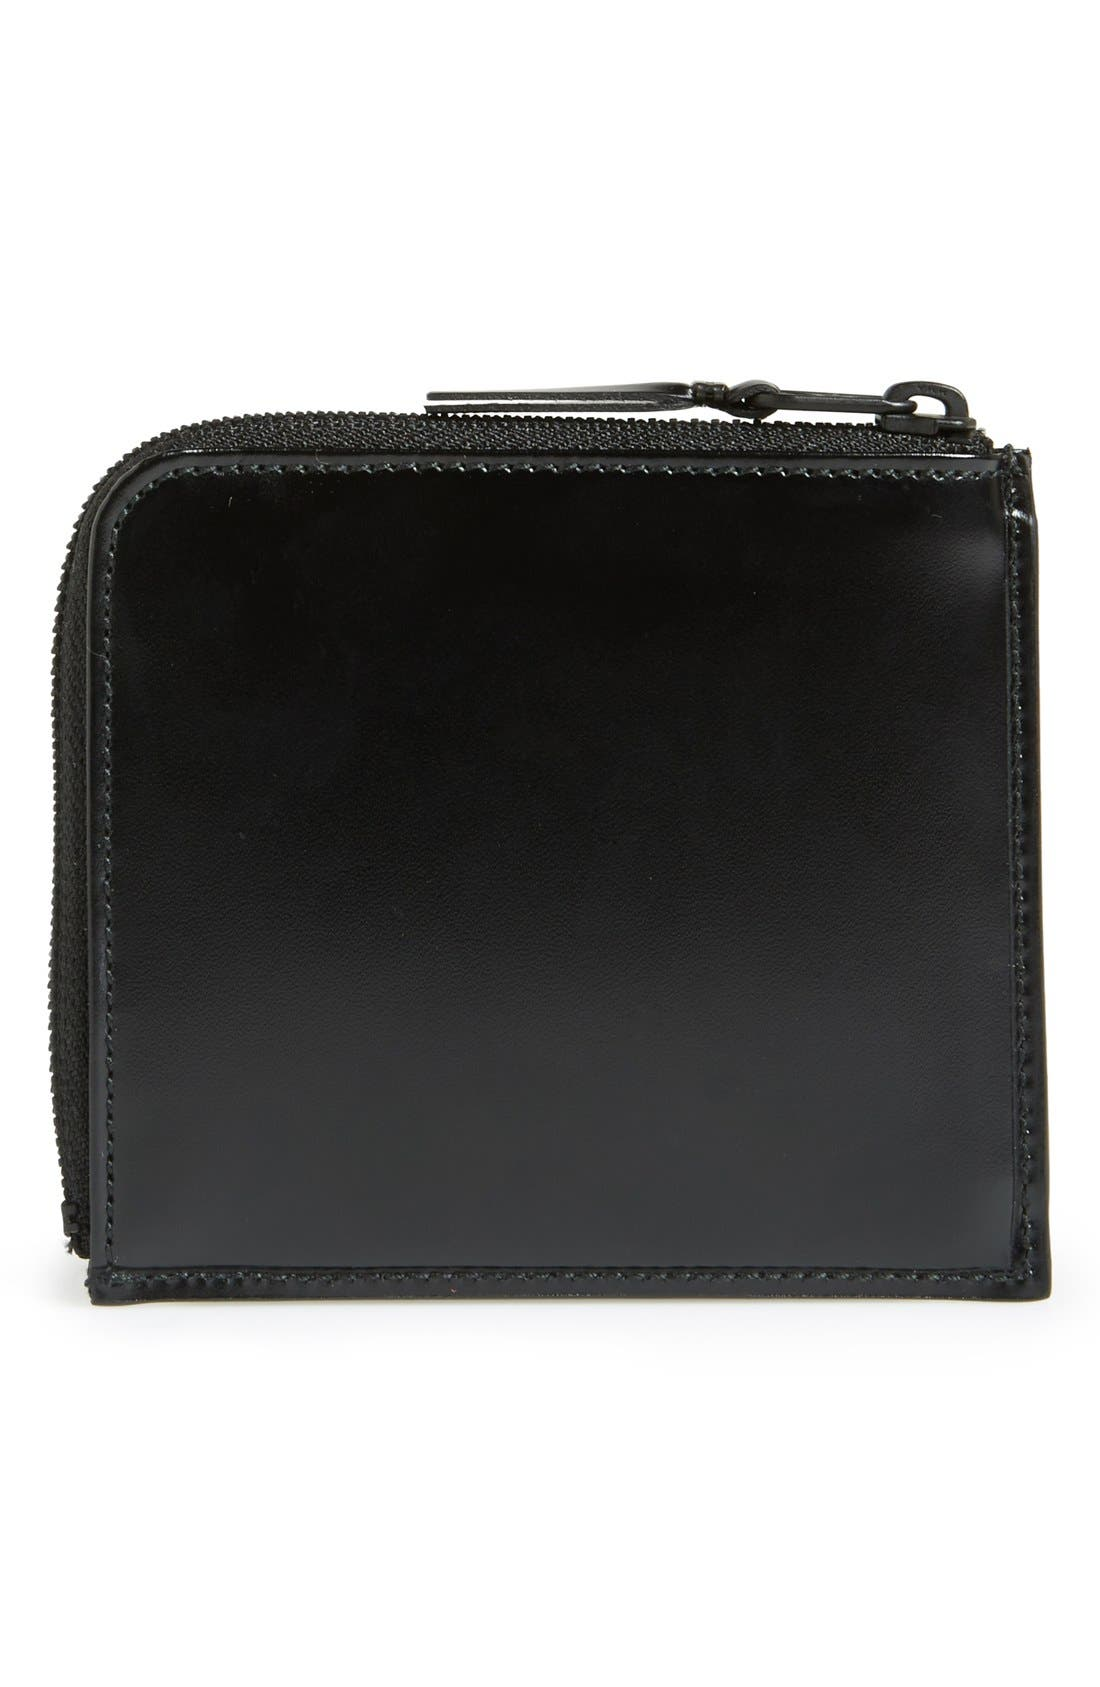 Half Zip French Wallet,                             Alternate thumbnail 3, color,                             001